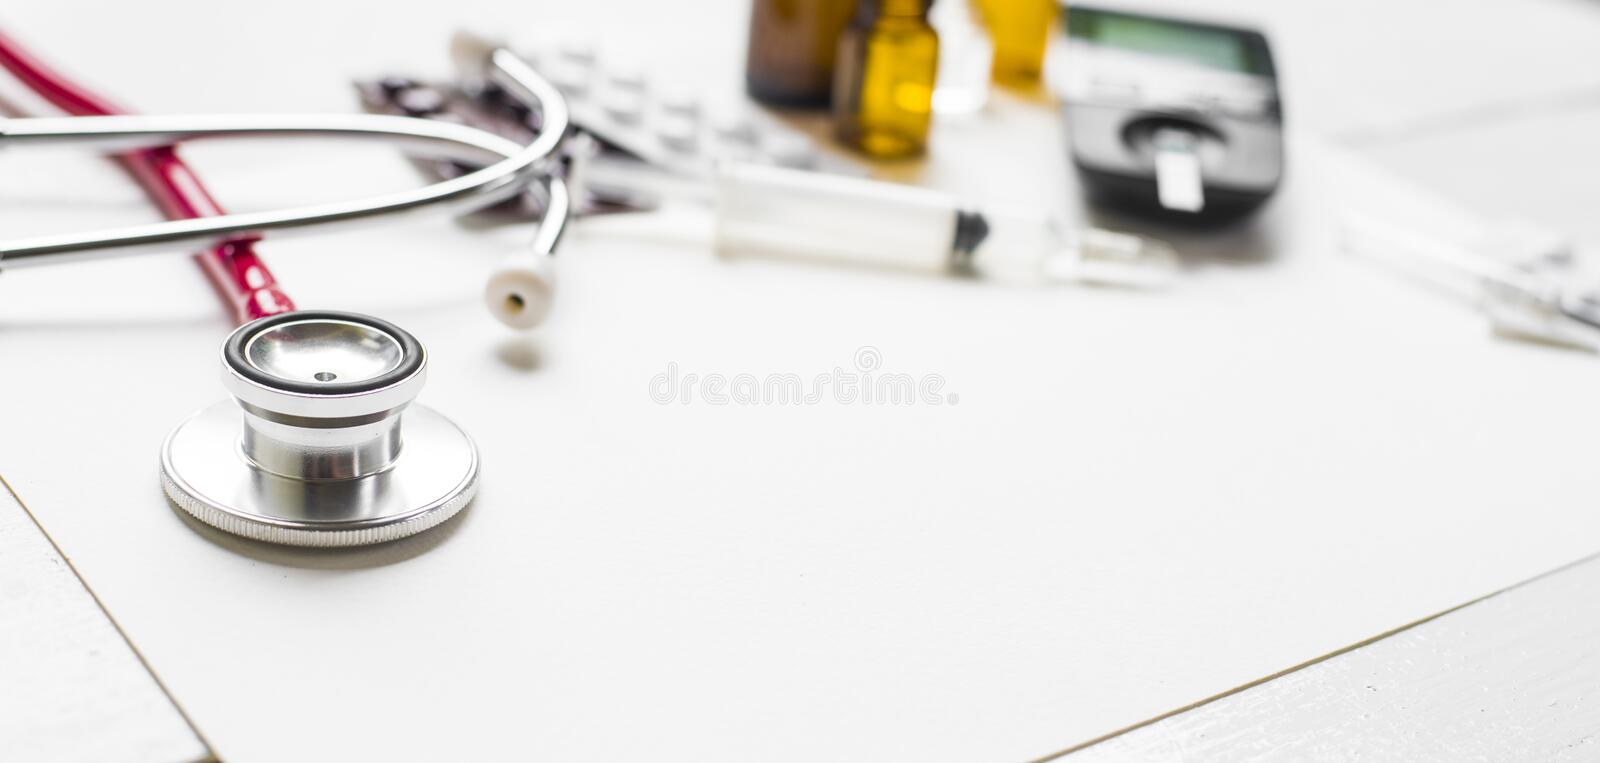 Medicine diabetes advertisement and health care concept stock photo